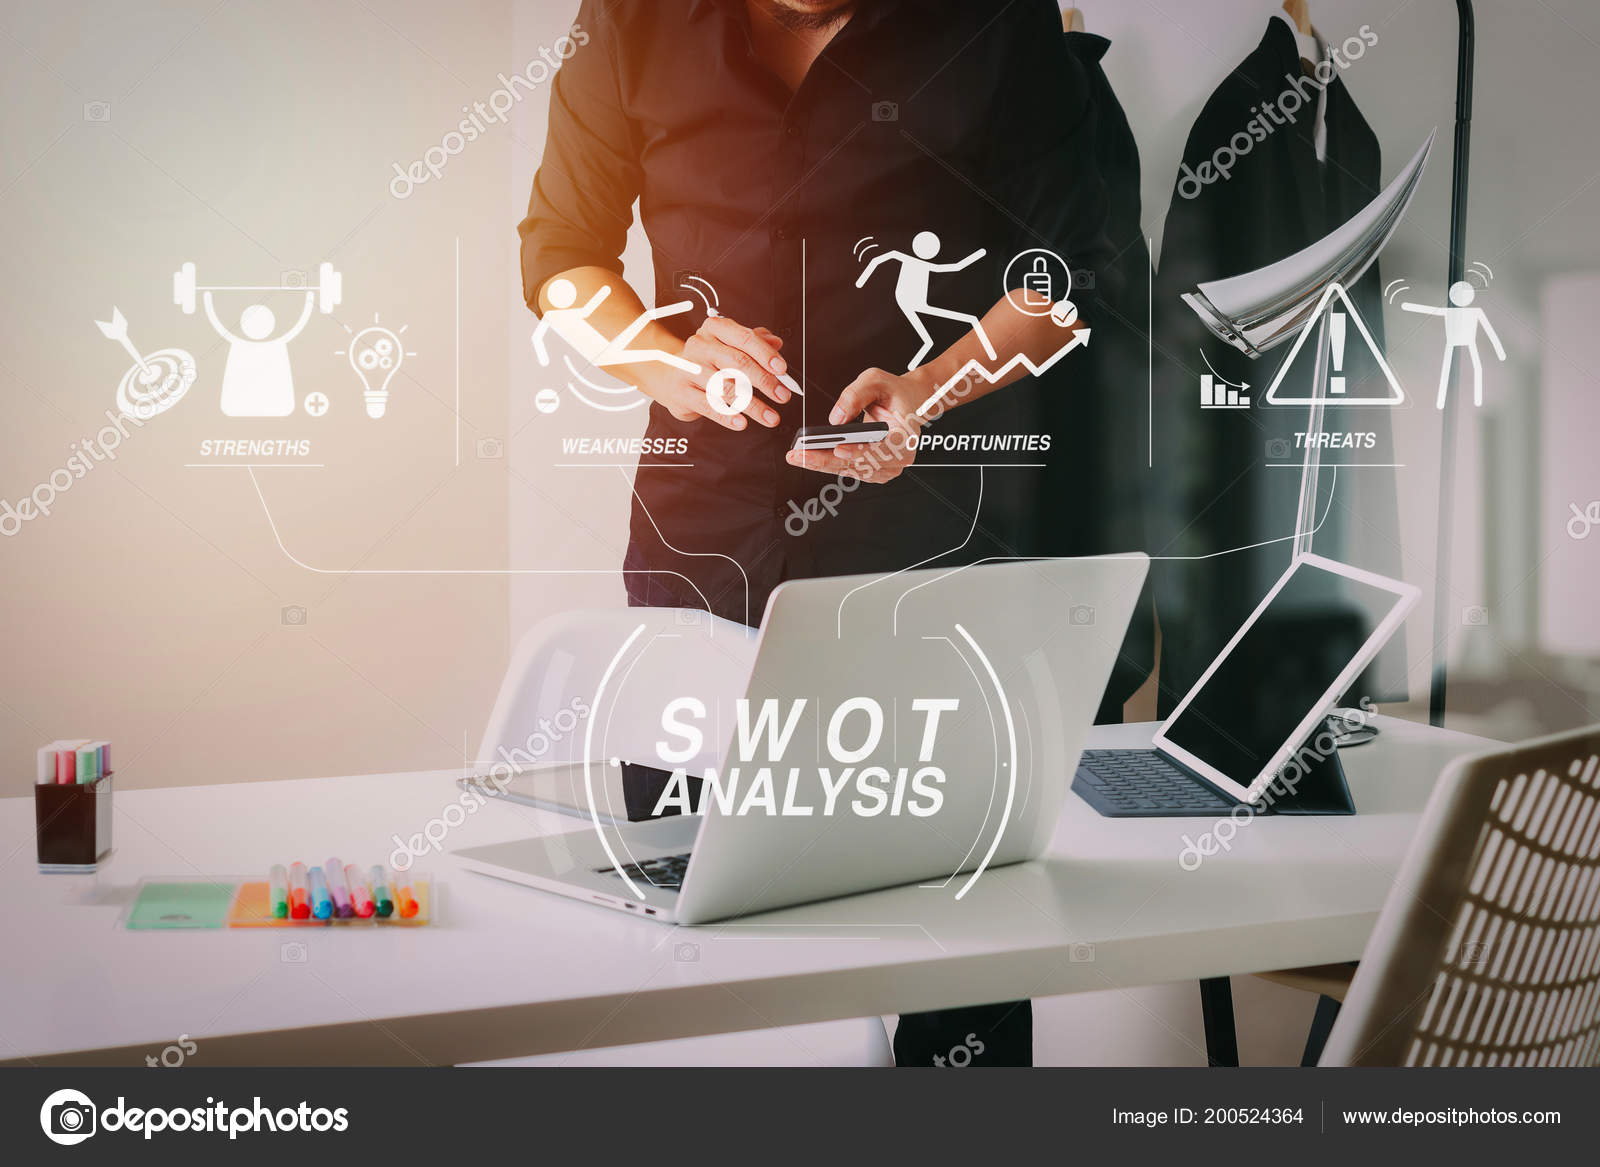 Swot Analysis Virtual Diagram Strengths Weaknesses Threats Opportunities Company Fashion Stock Photo C Everythingposs 200524364